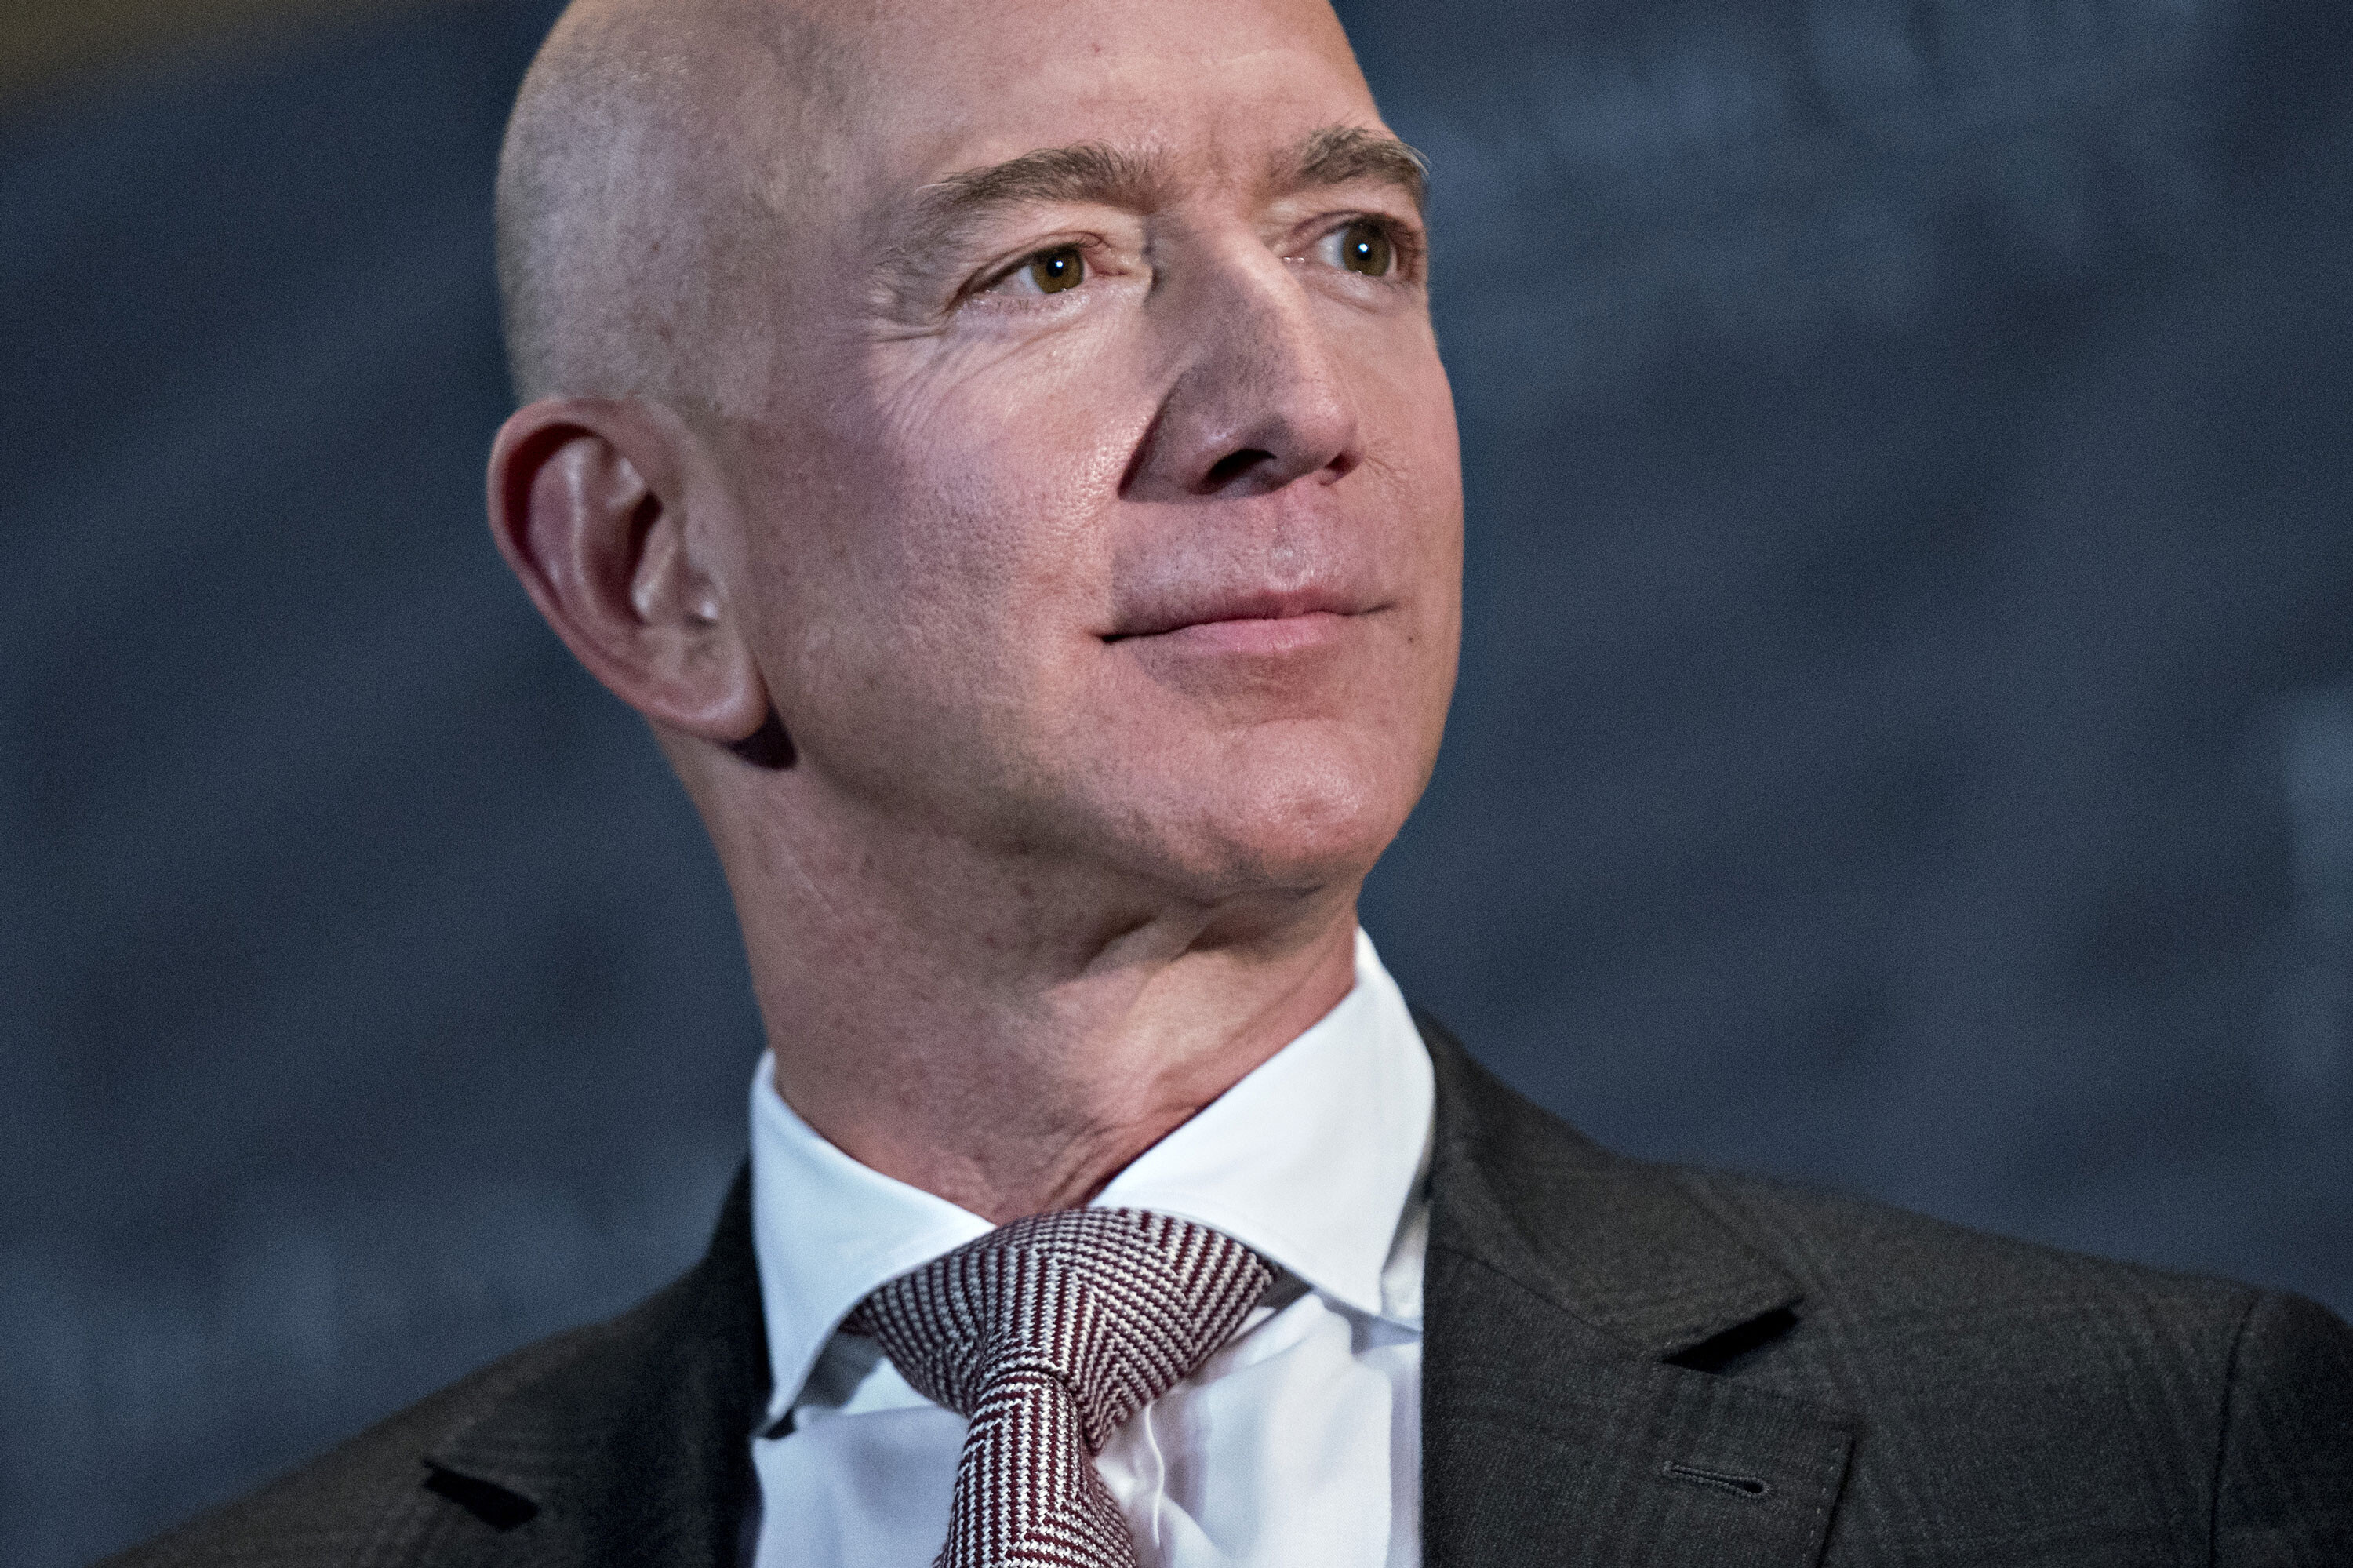 Bezos donates $200 million to Smithsonian, the biggest gift in the museum's history